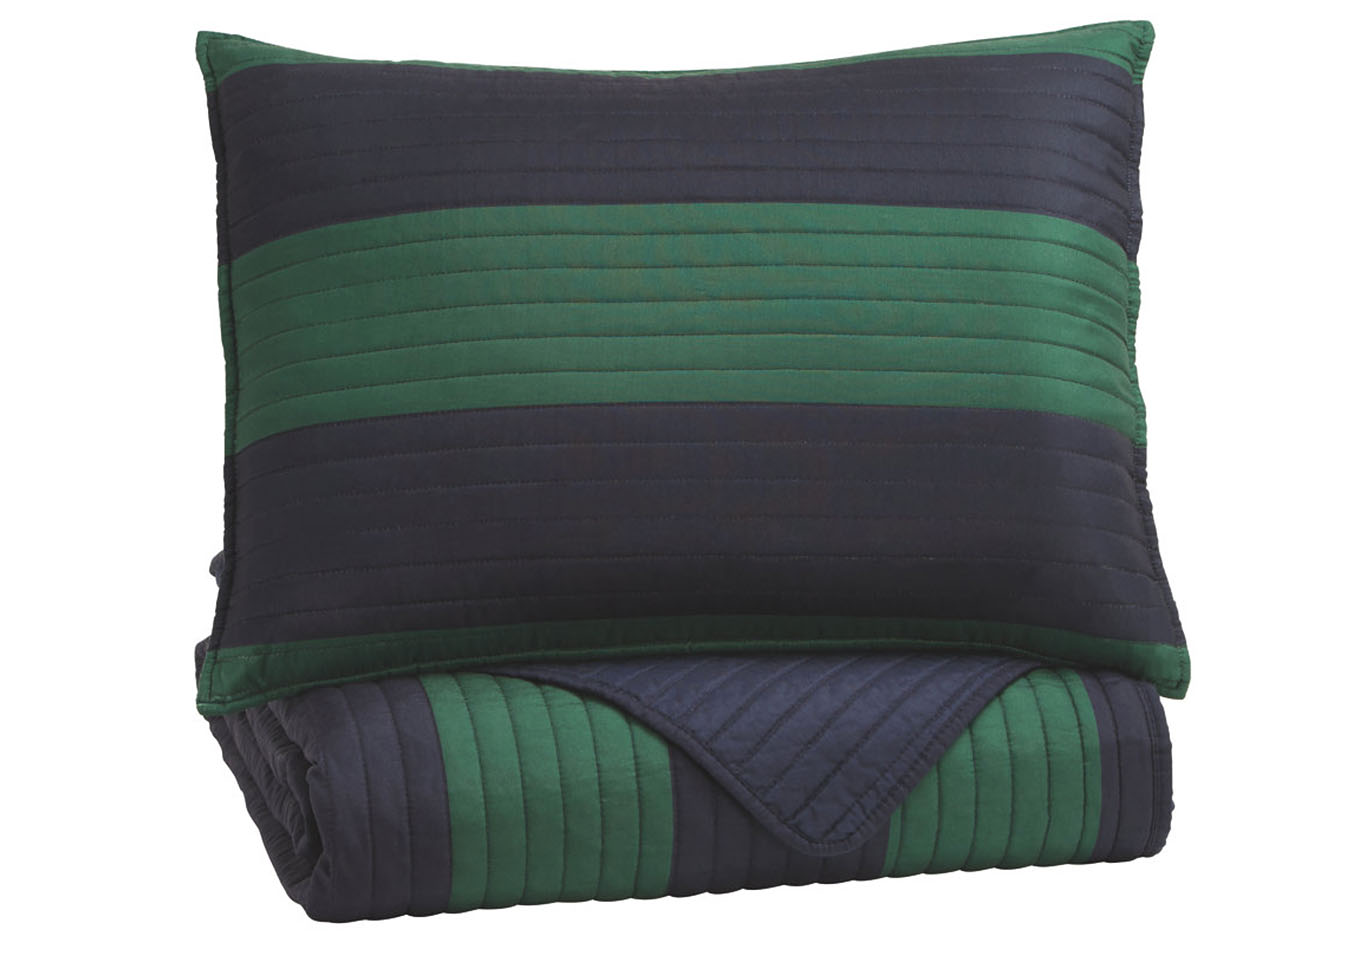 Reggie Blue/Green Twin Coverlet Set,Signature Design By Ashley